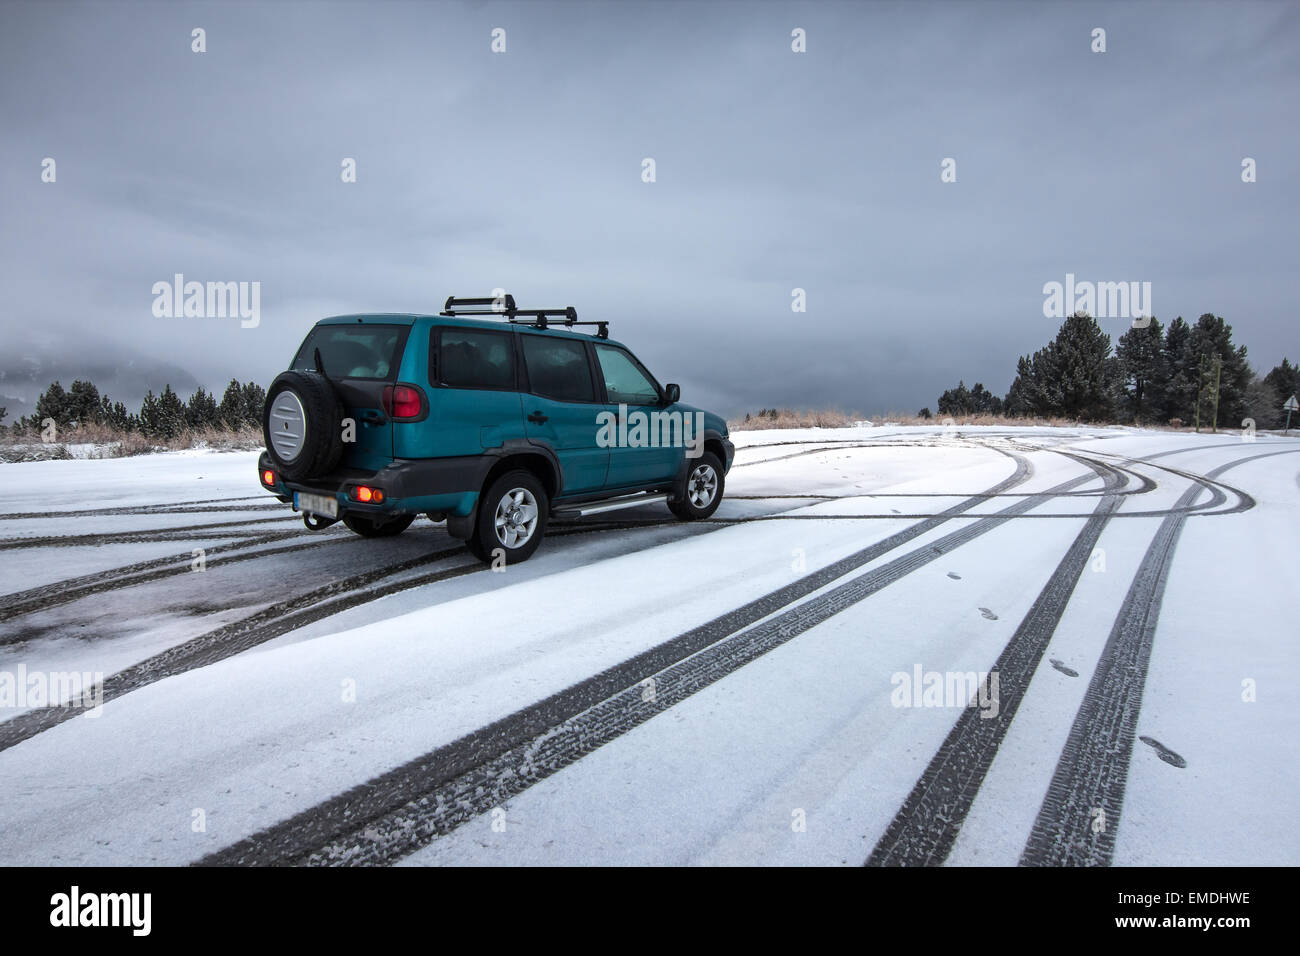 All terrain car on a snowed road. - Stock Image